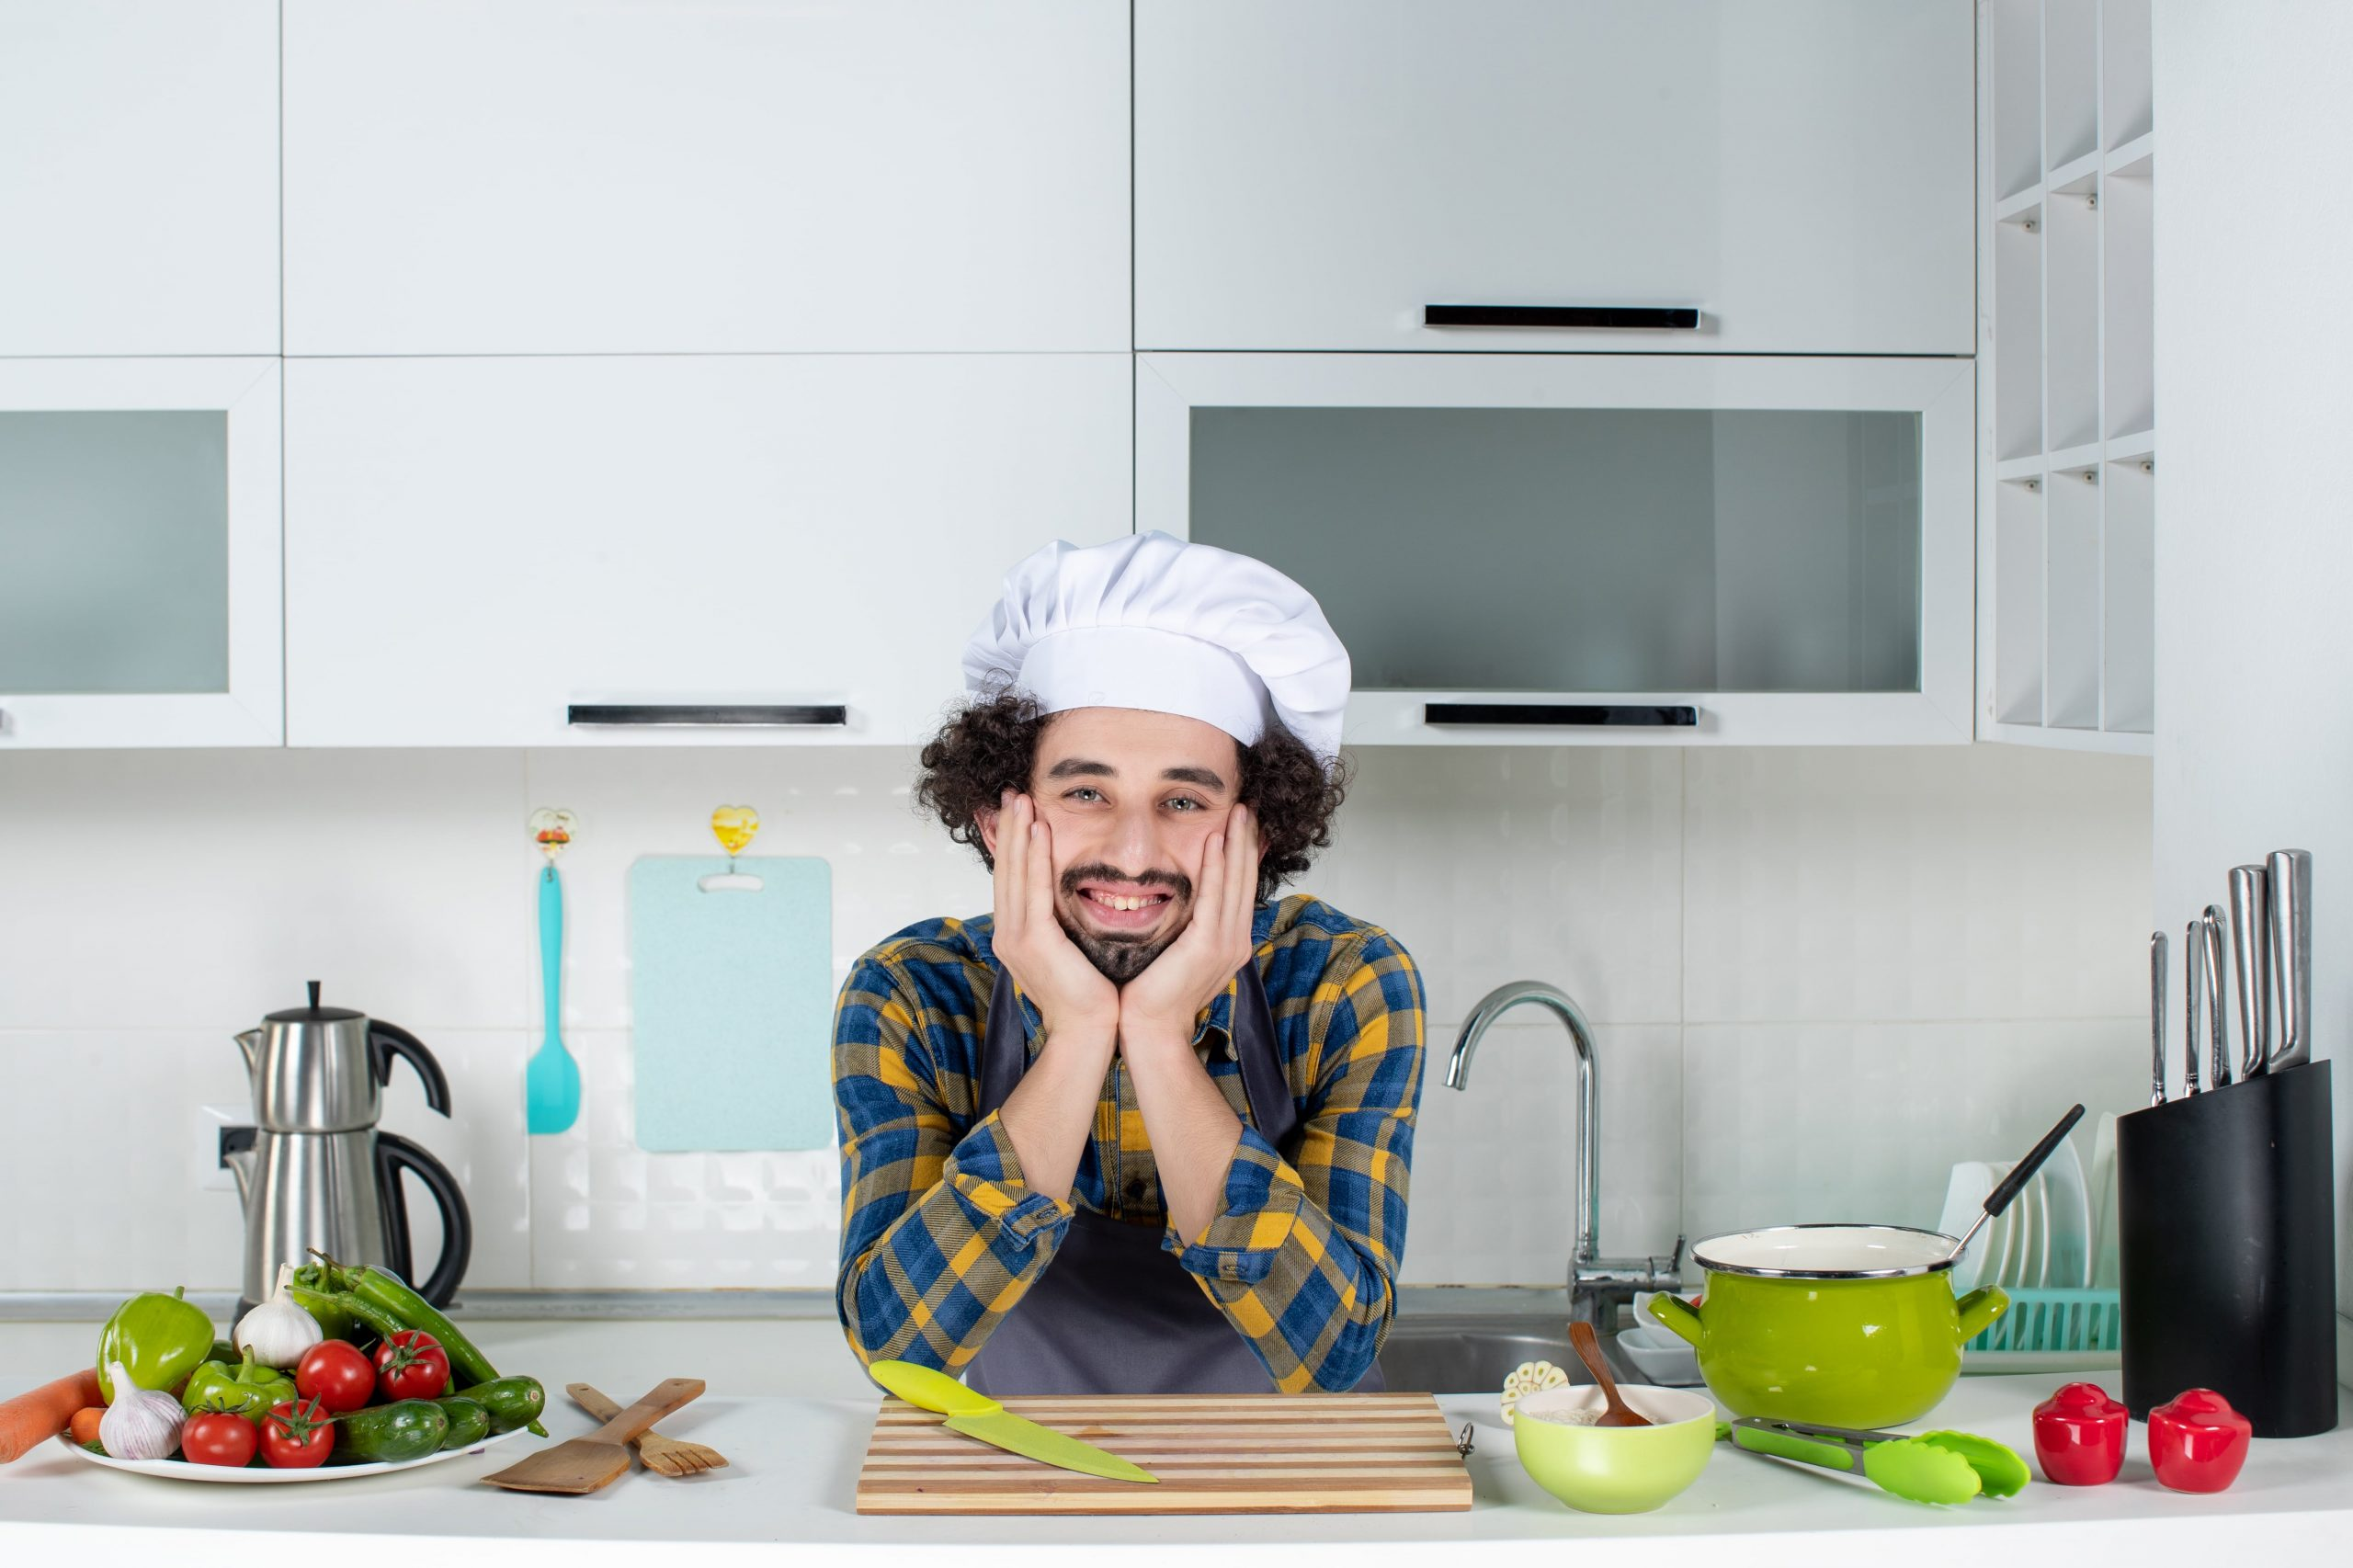 smiling-male-chef-with-fresh-vegetables-posing-white-kitchen